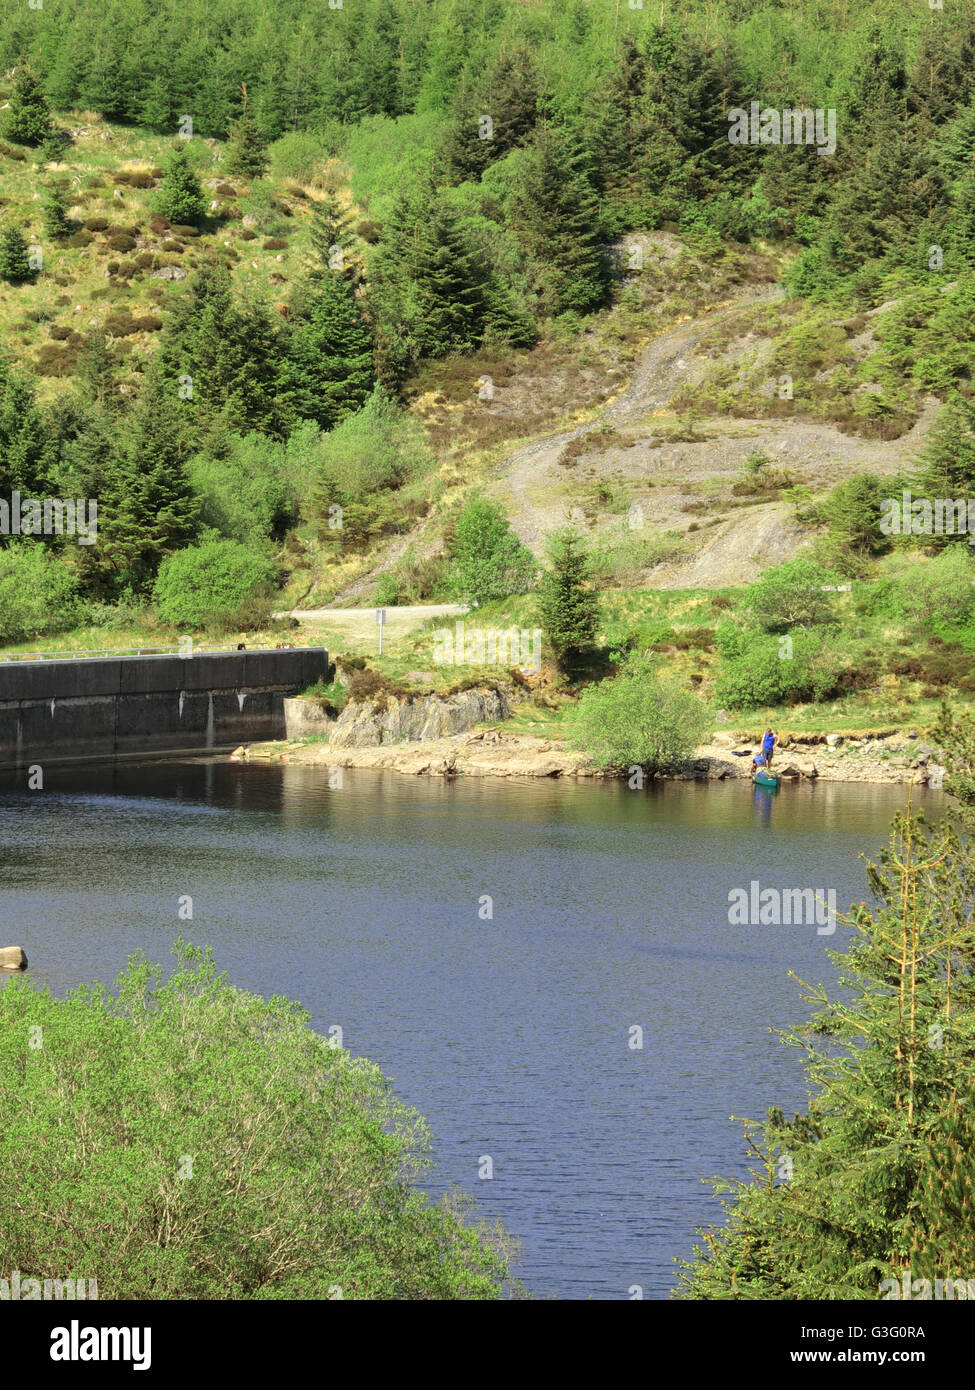 Loch Bradan, Carrick Forest, Galloway Forest National Park, South Ayrshire, Scotland, UK - Stock Image